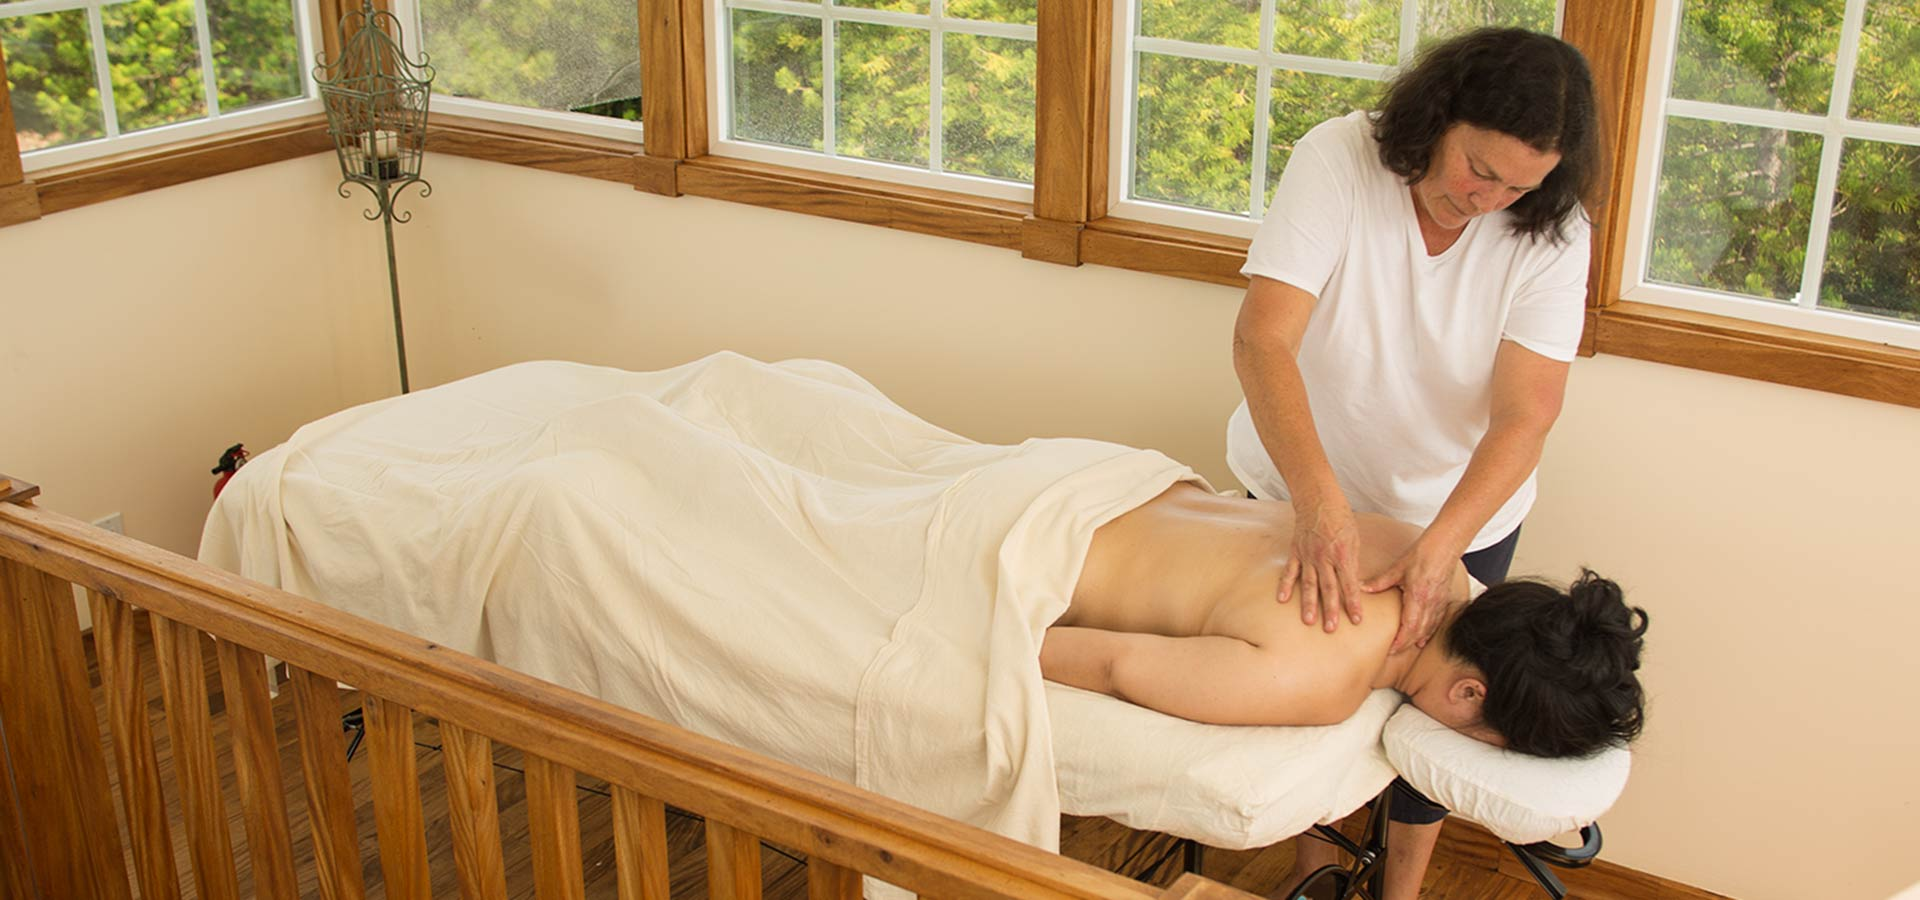 Enjoy a massage at Kalaekilohana Inn & Retreat